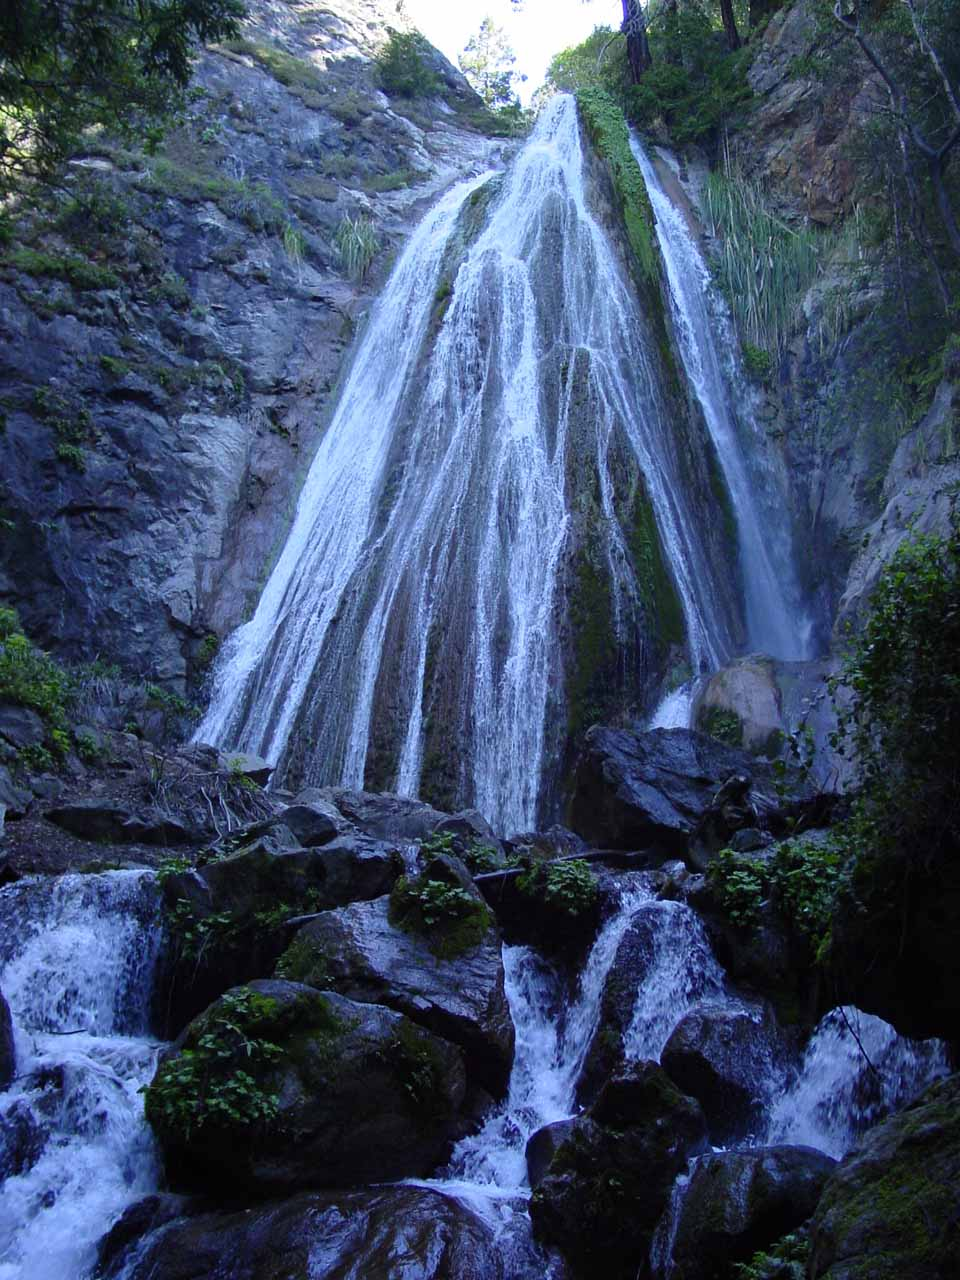 Our first look at Limekiln Falls from back in 2003